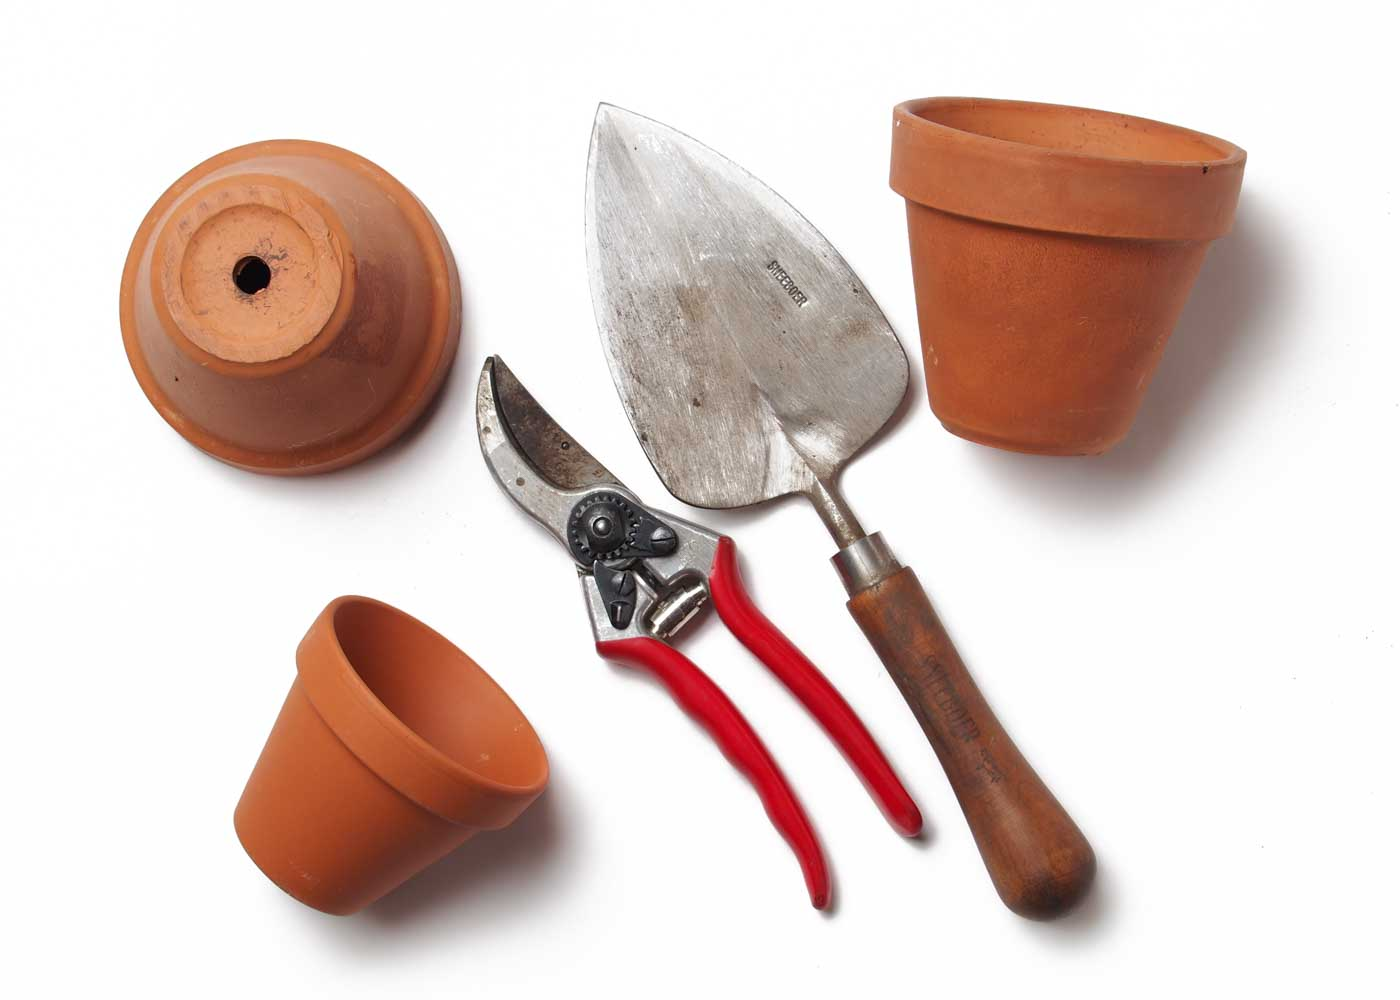 Hobby-related gifts - like a gardening tool or two - get high marks. Don't forget the gift receipt though!